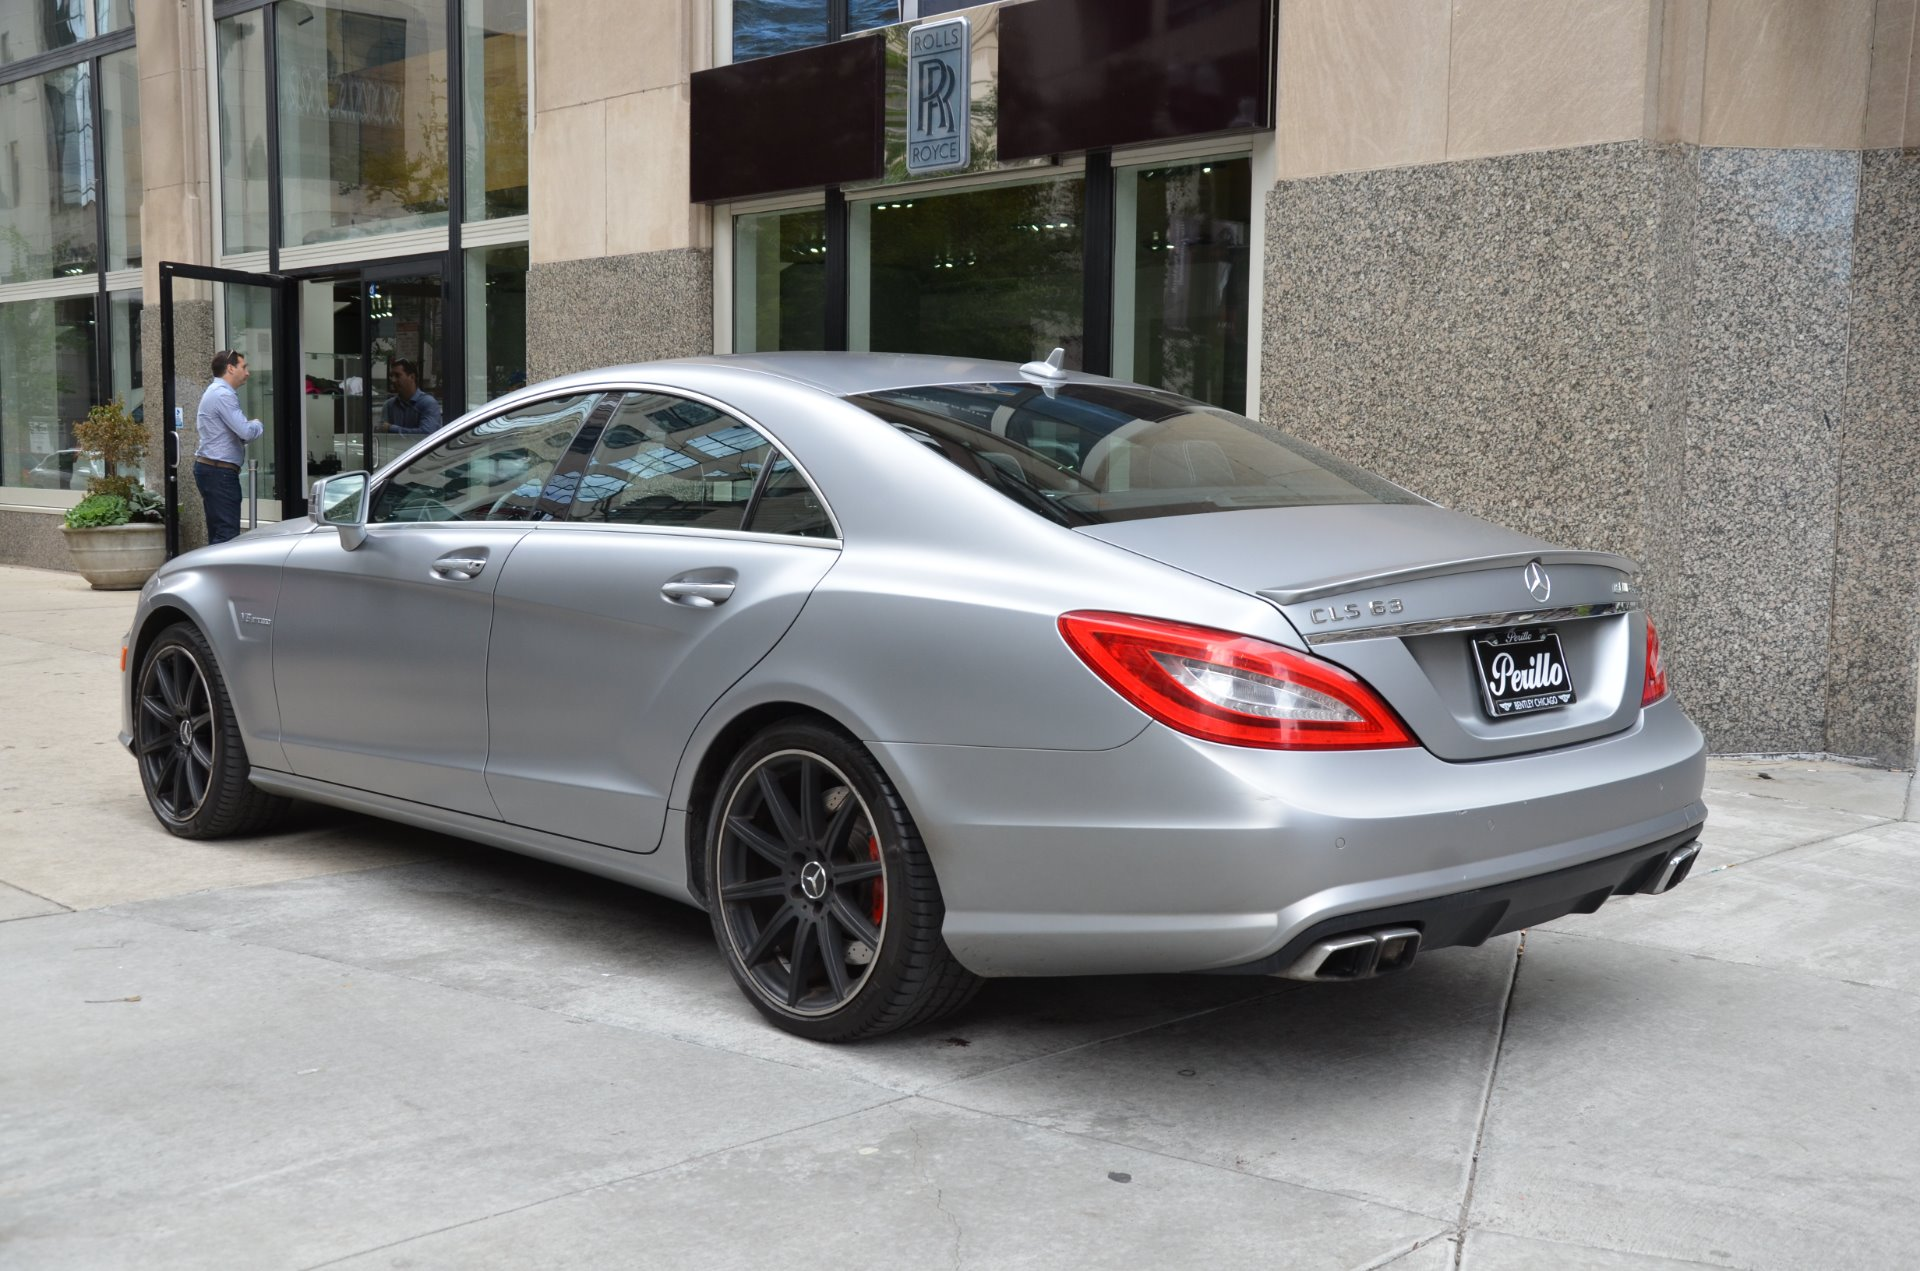 2014 mercedes benz cls cls63 amg s model stock b807a for for Mercedes benz cls 2014